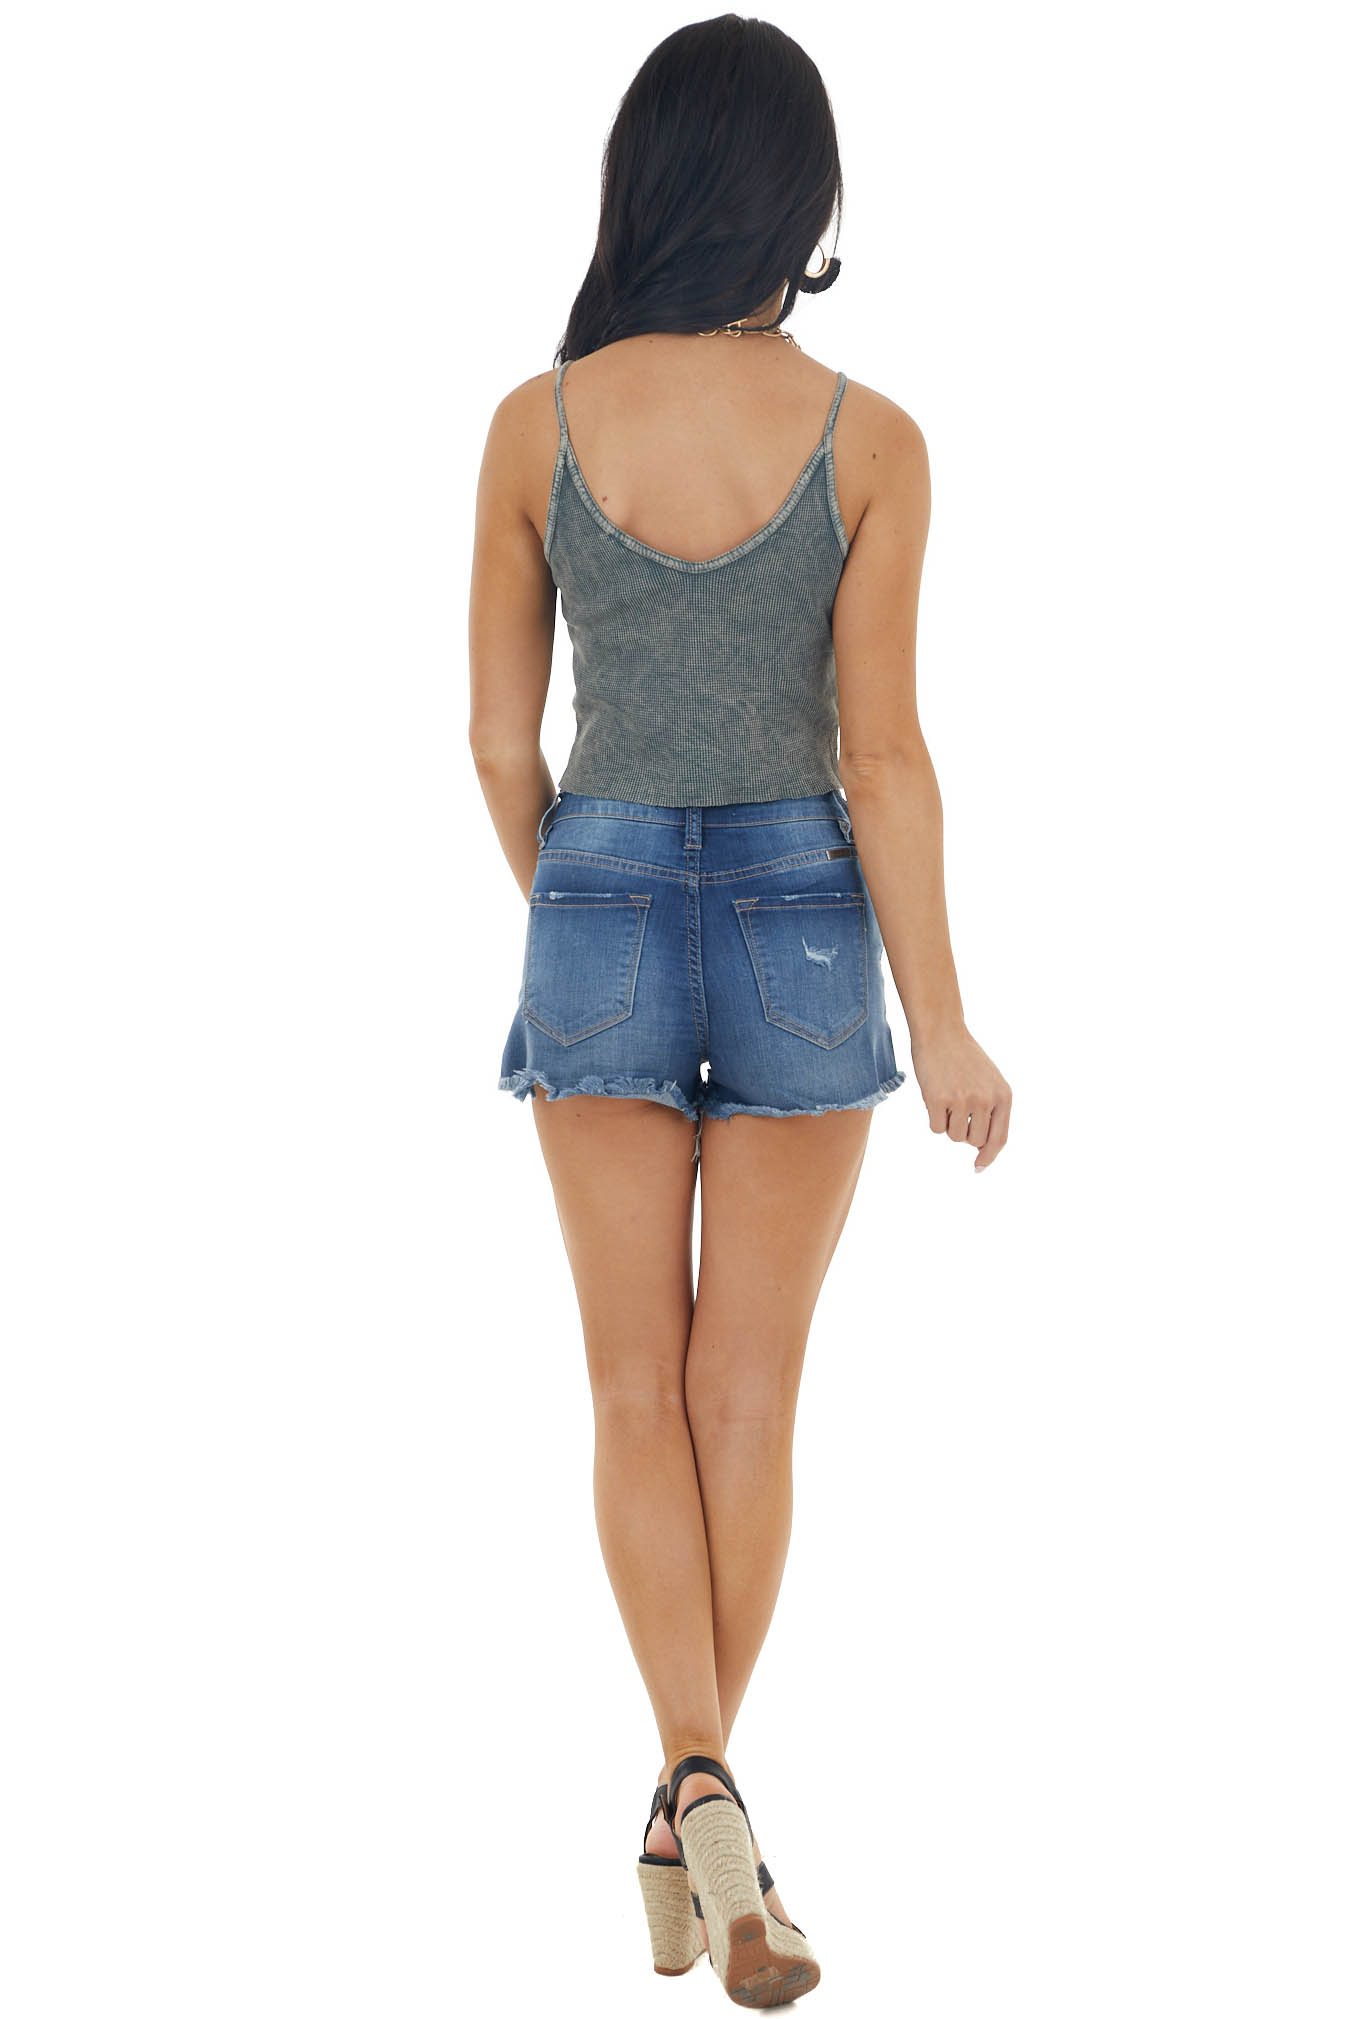 Graphite Grey Mineral Wash Sleeveless Waffle Knit Crop Top